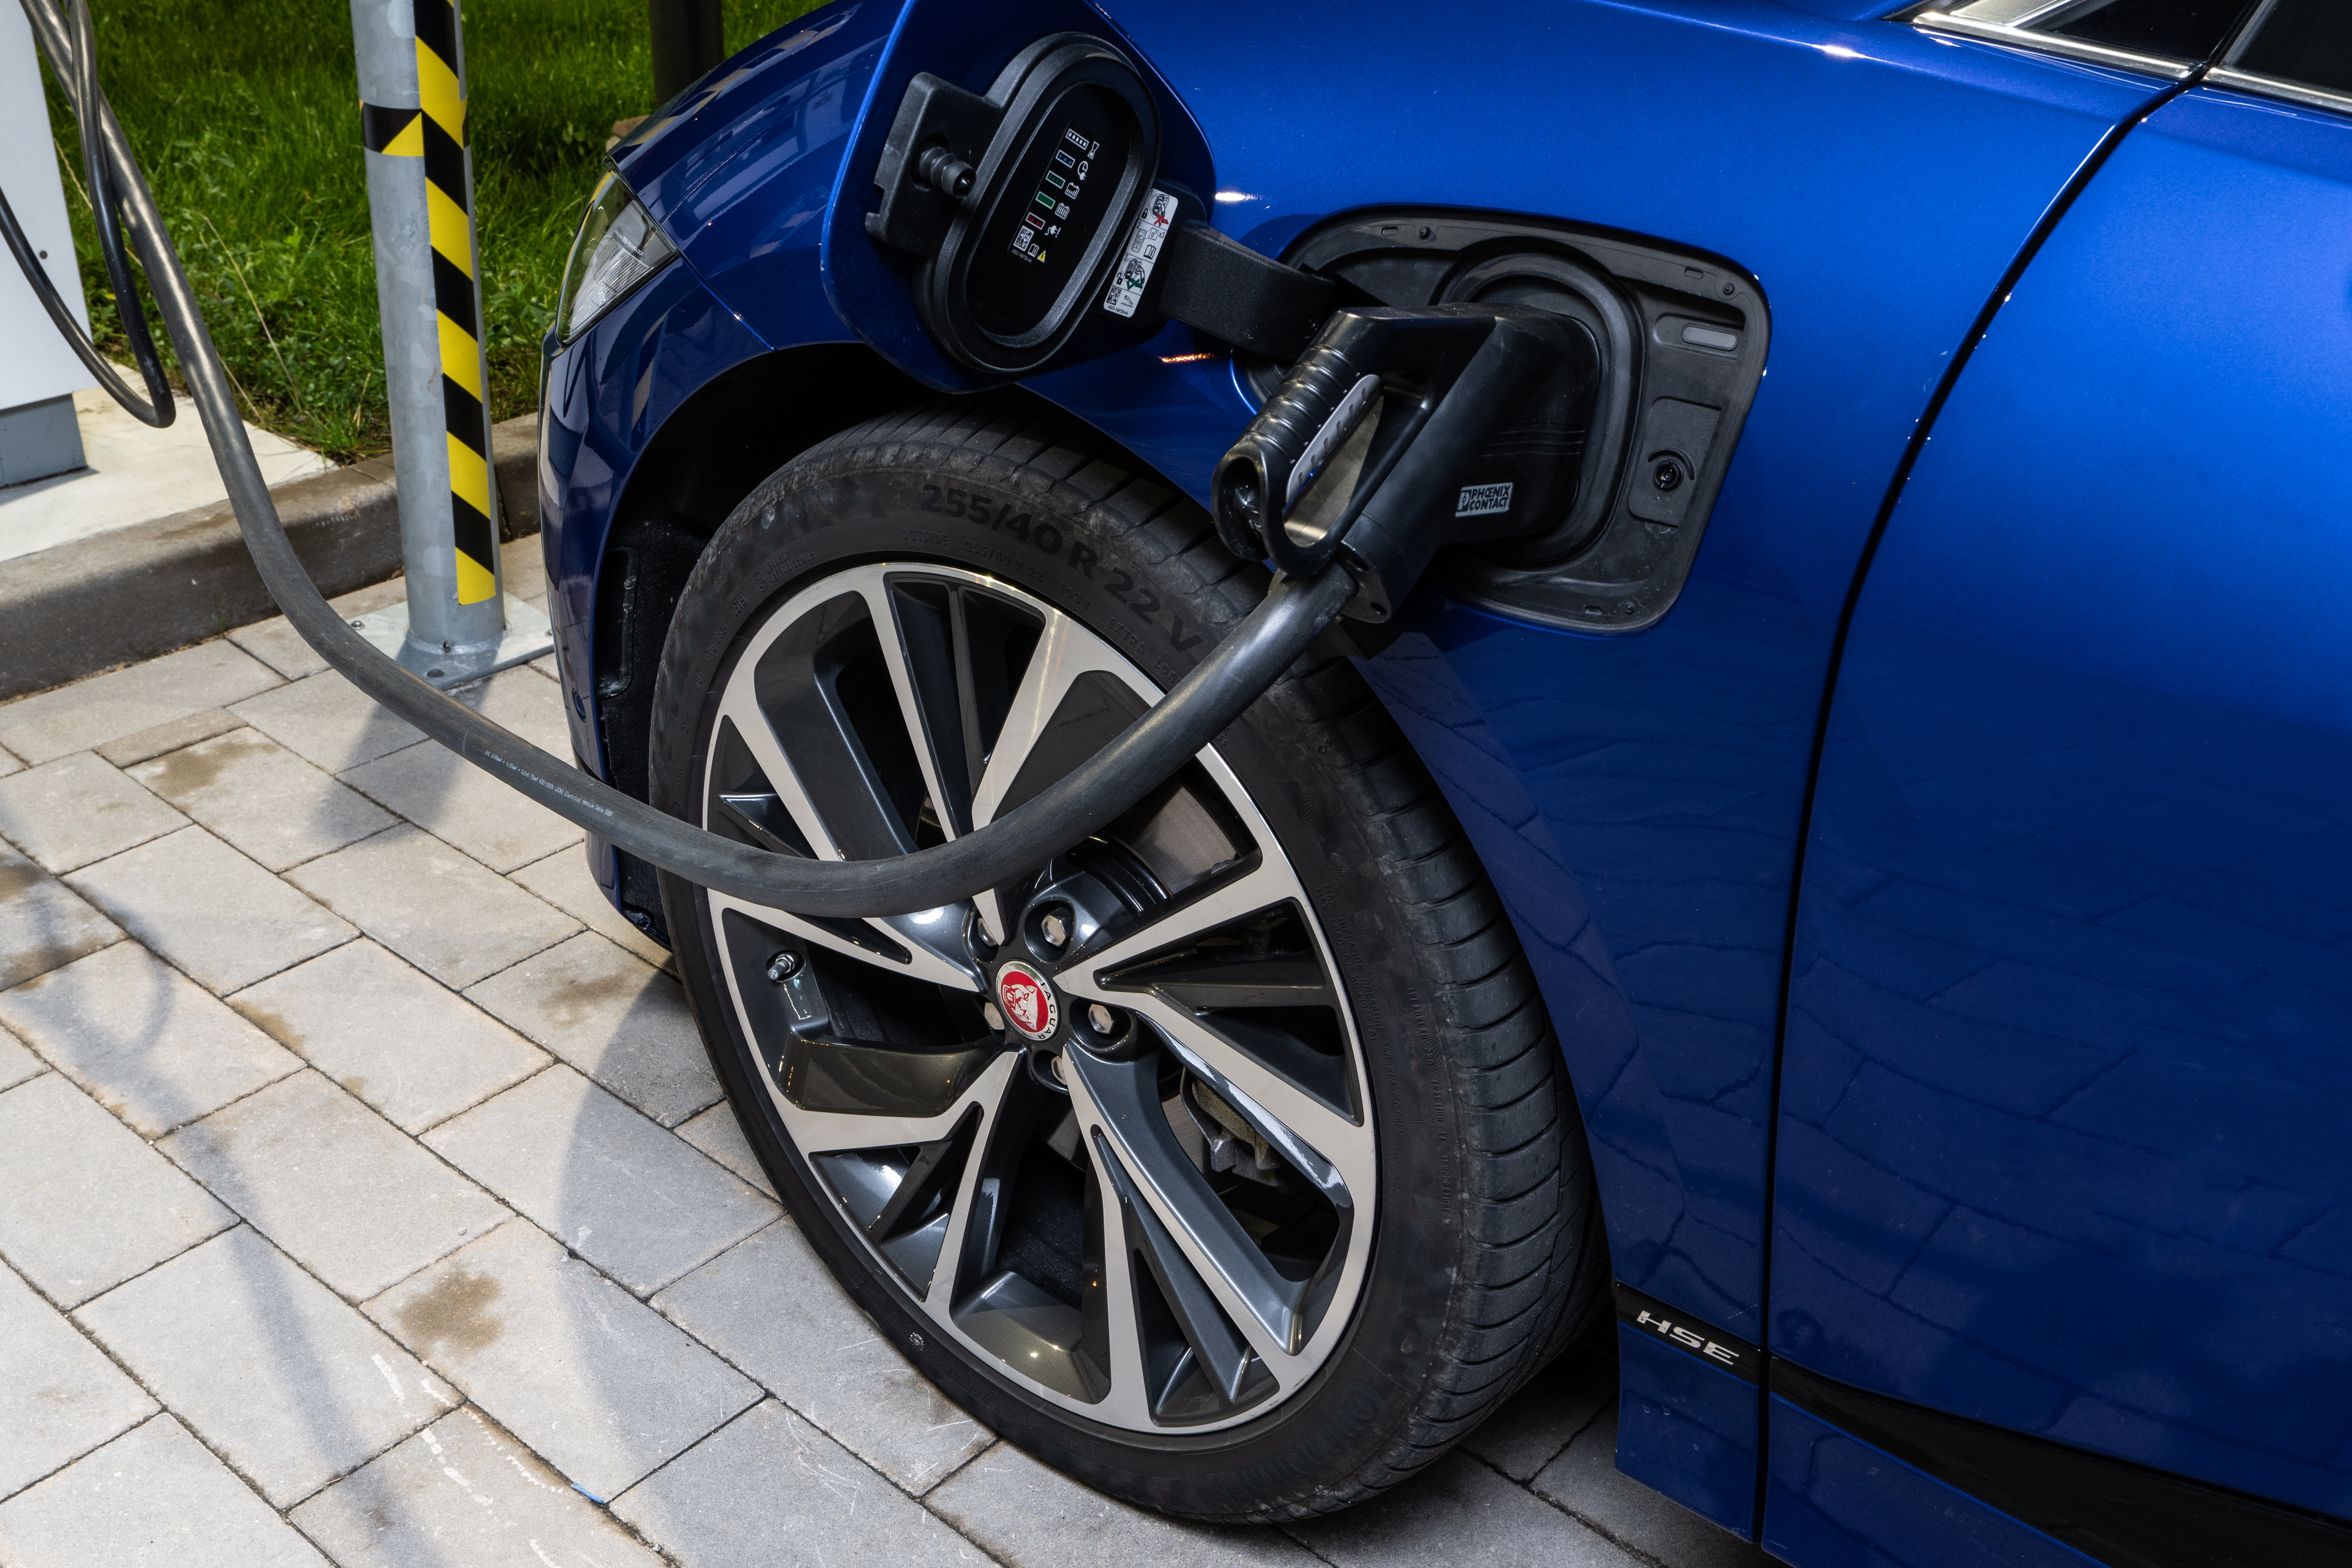 Blue Jaguar I-Pace Compact Luxury Electric CUV Plugged Into Electric Charger